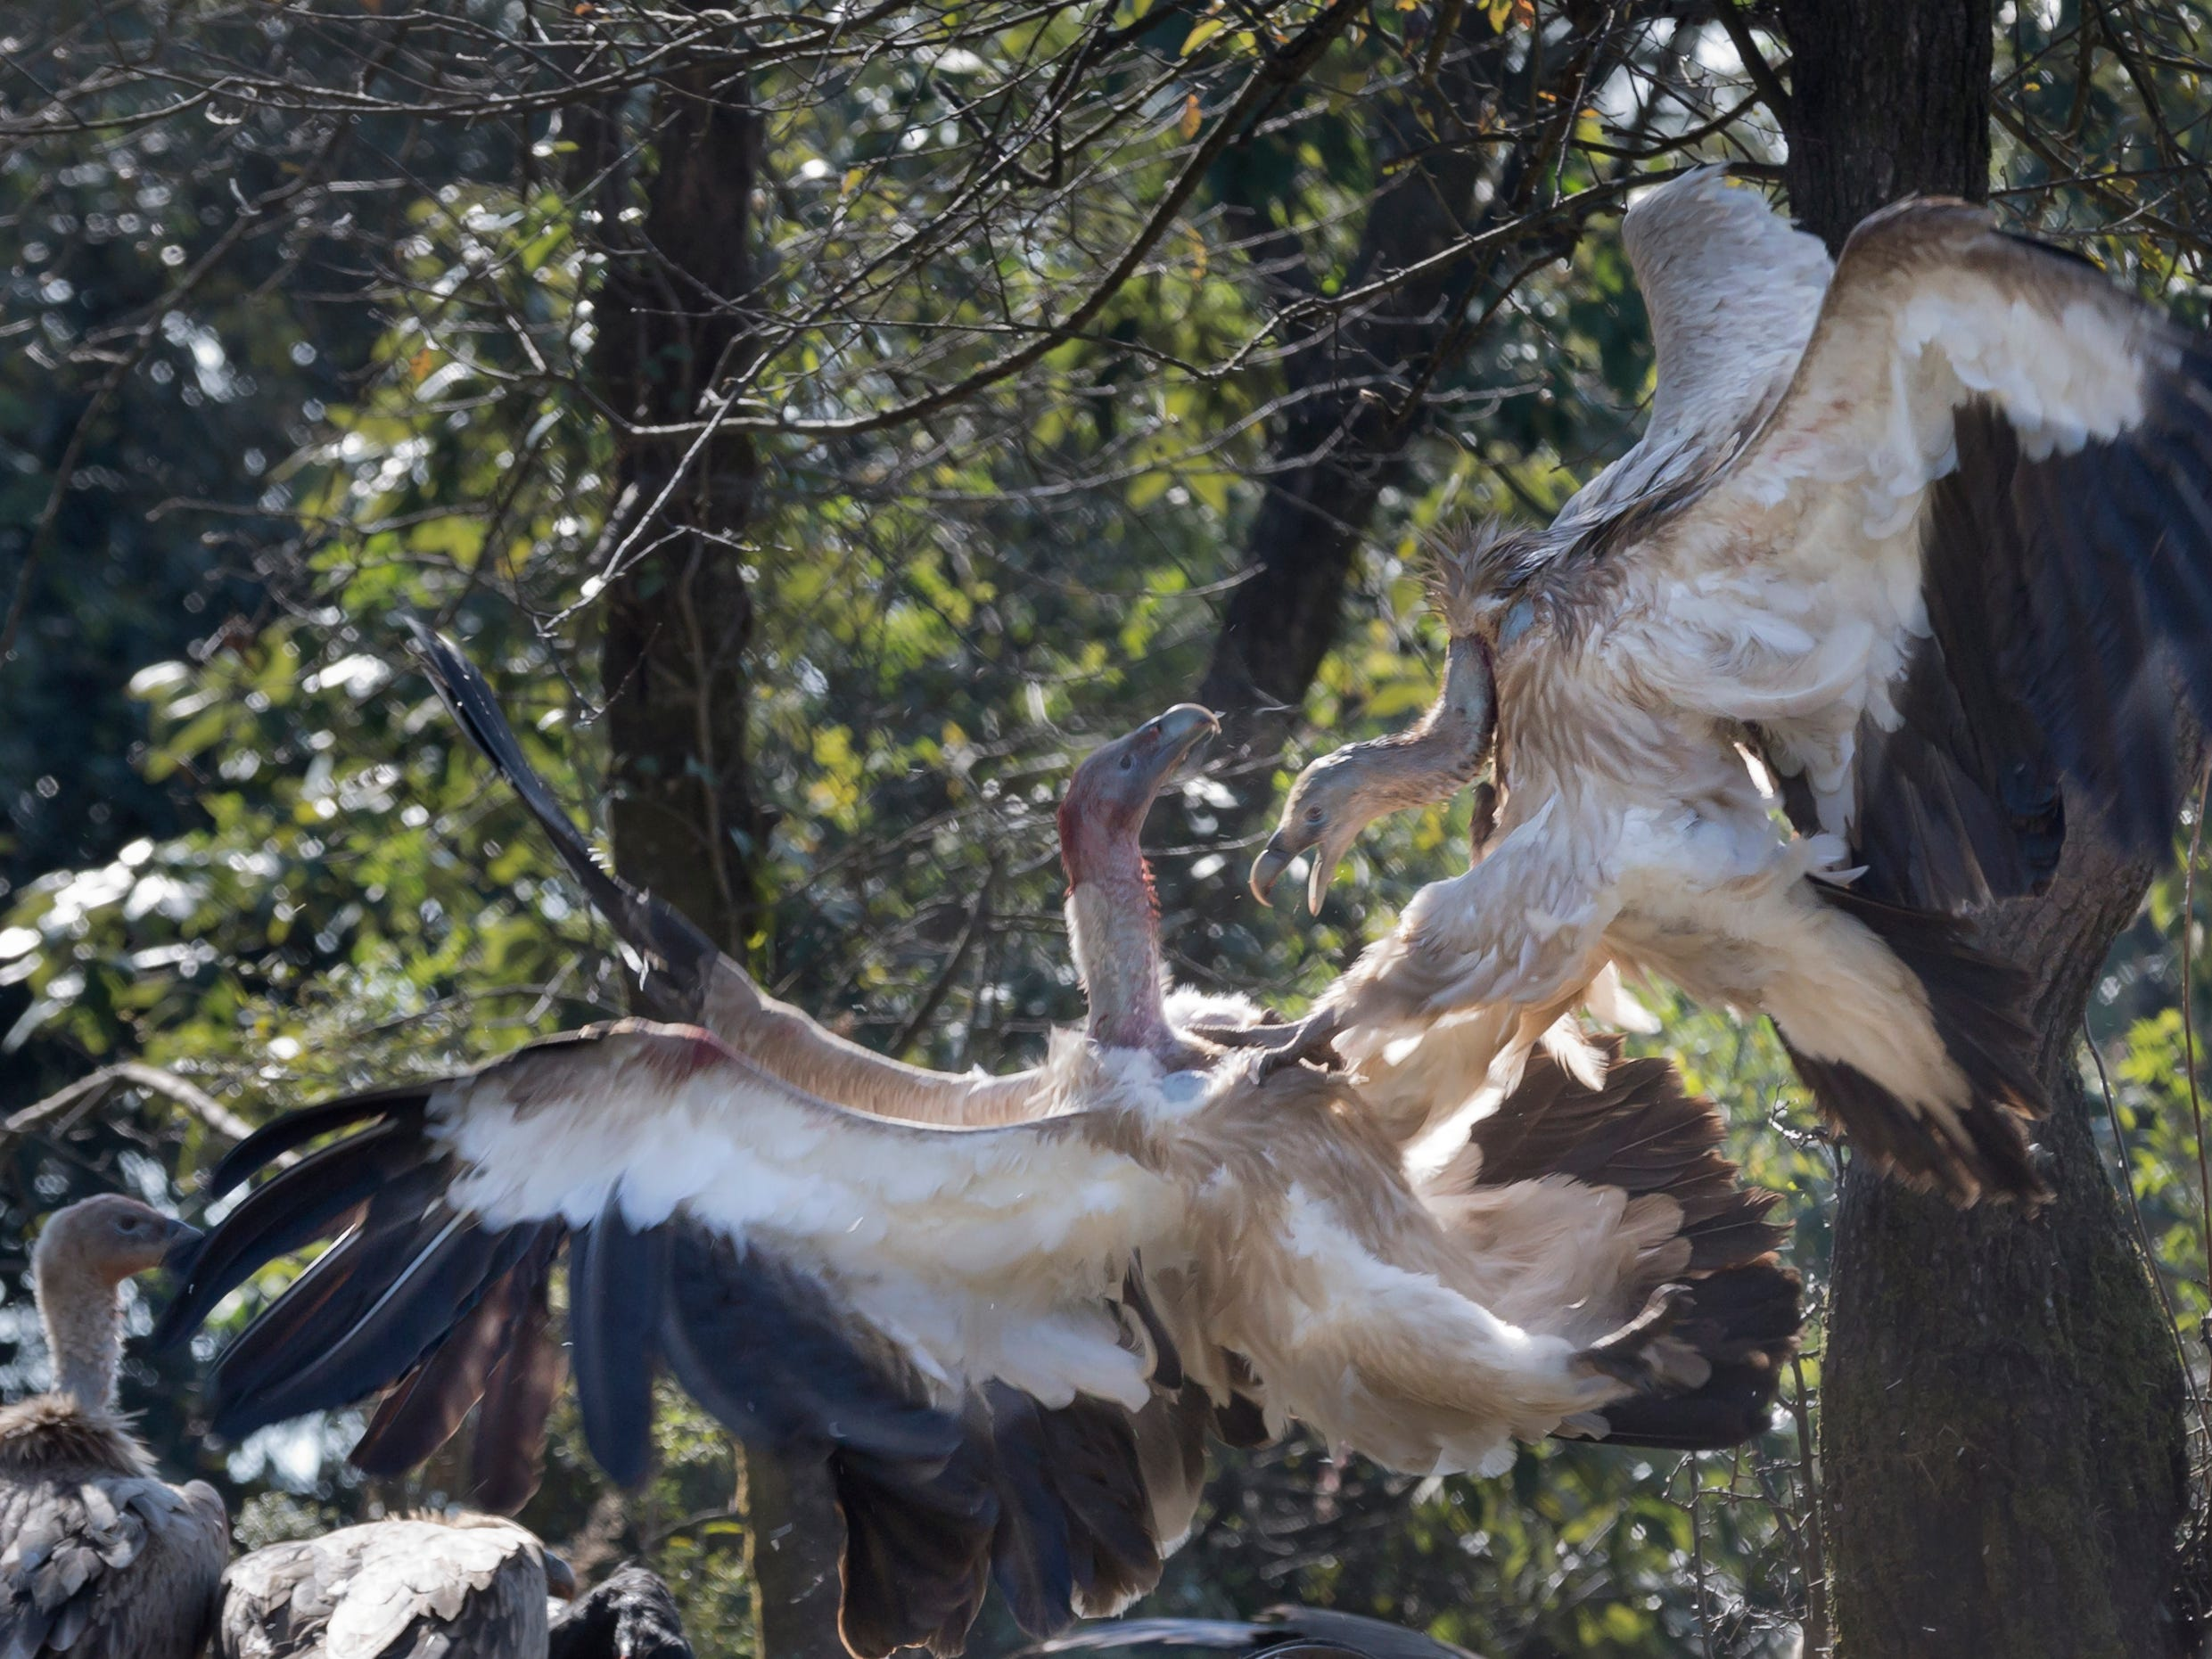 Himalayan griffon vultures spar over a carcass in Dharmsala, India, Friday, Dec. 7, 2018. These griffons have been listed as near threatened species, according to International Union for Conservation of Nature.